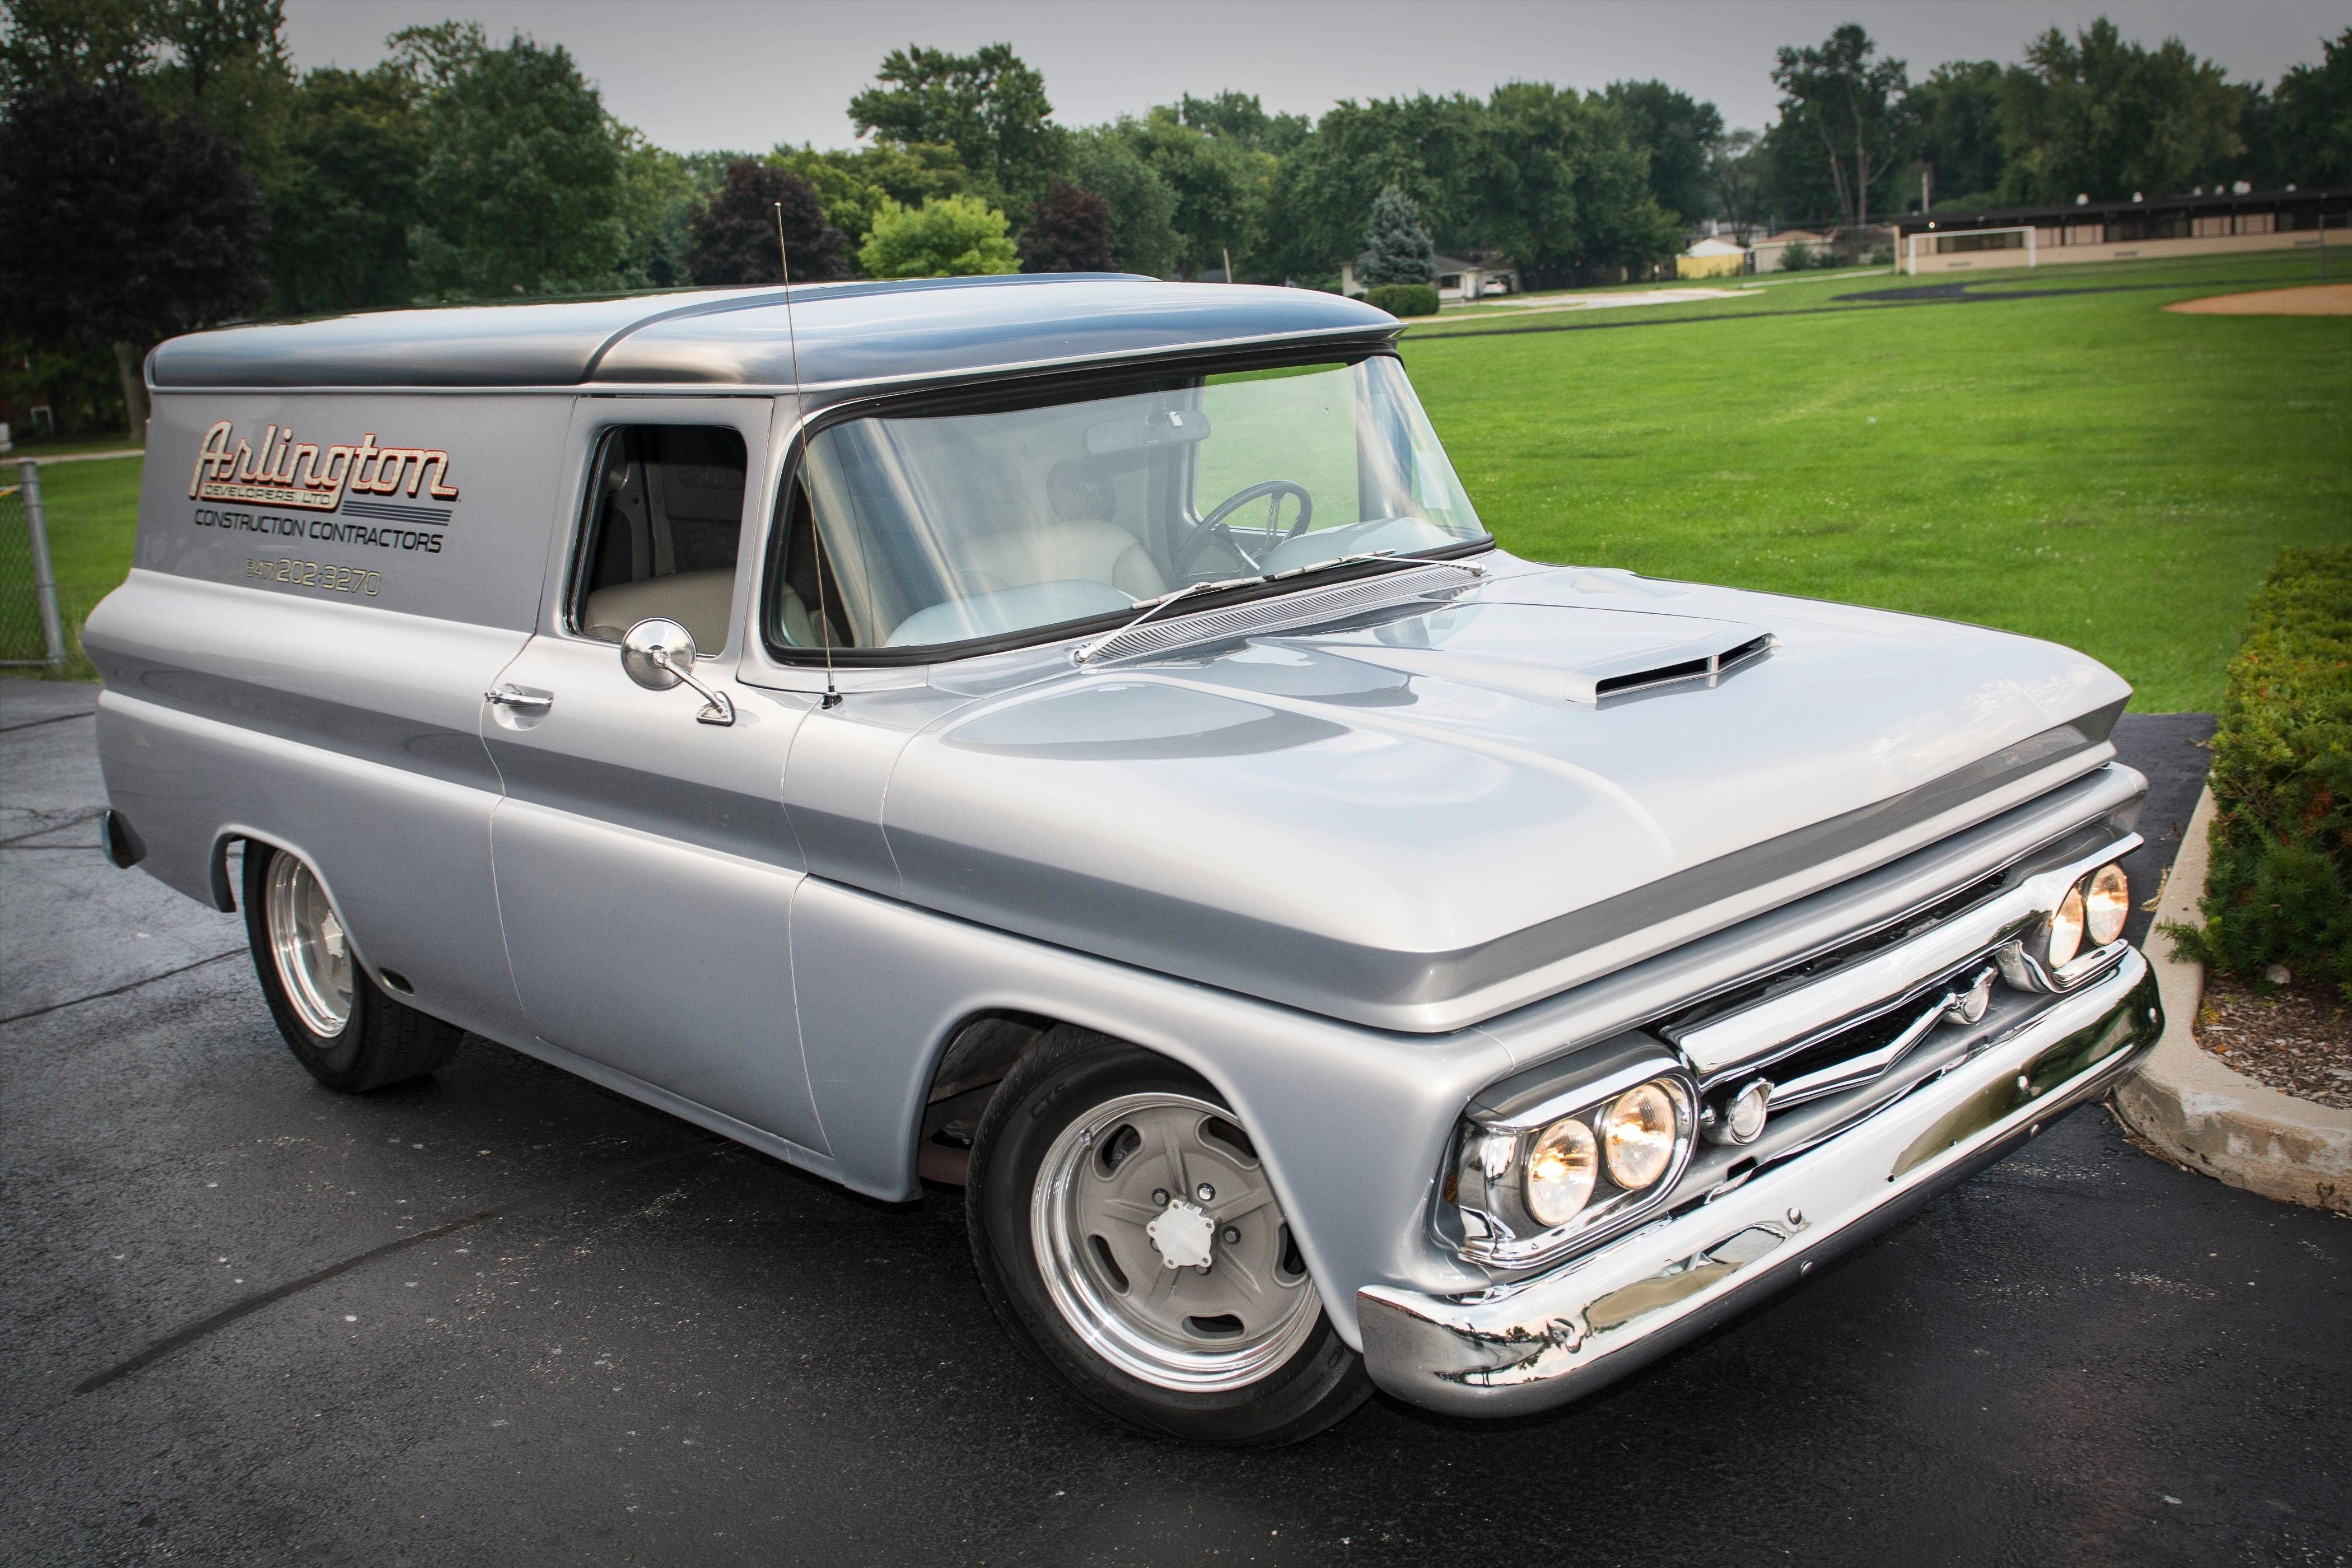 1962 Chevrolet Panel Truck Remains On The Job